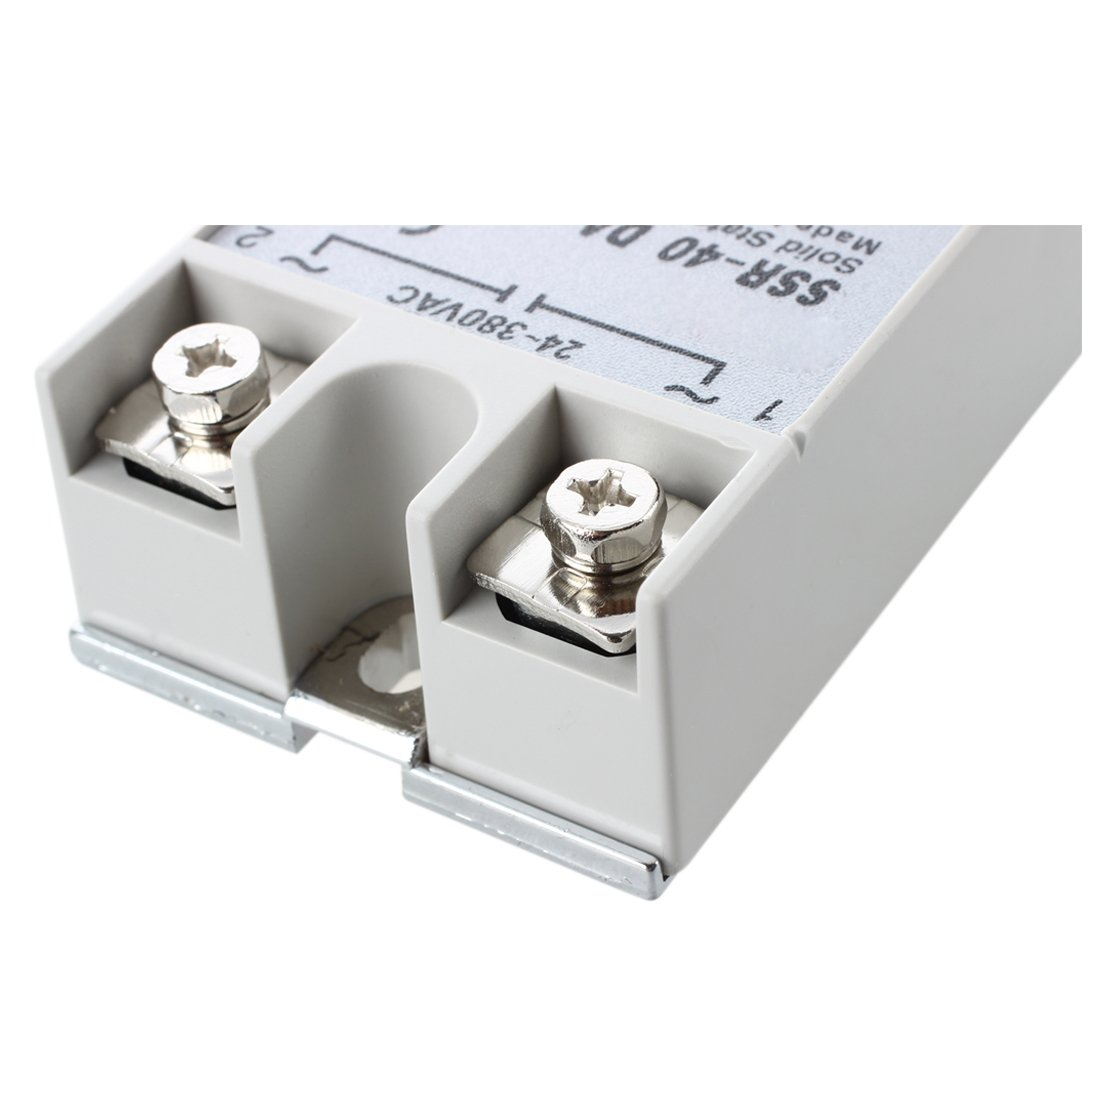 Ssr 40da Solid State Relay 3 32v Dc 24 380v Ac 40a Sodial Se There Are Relays And